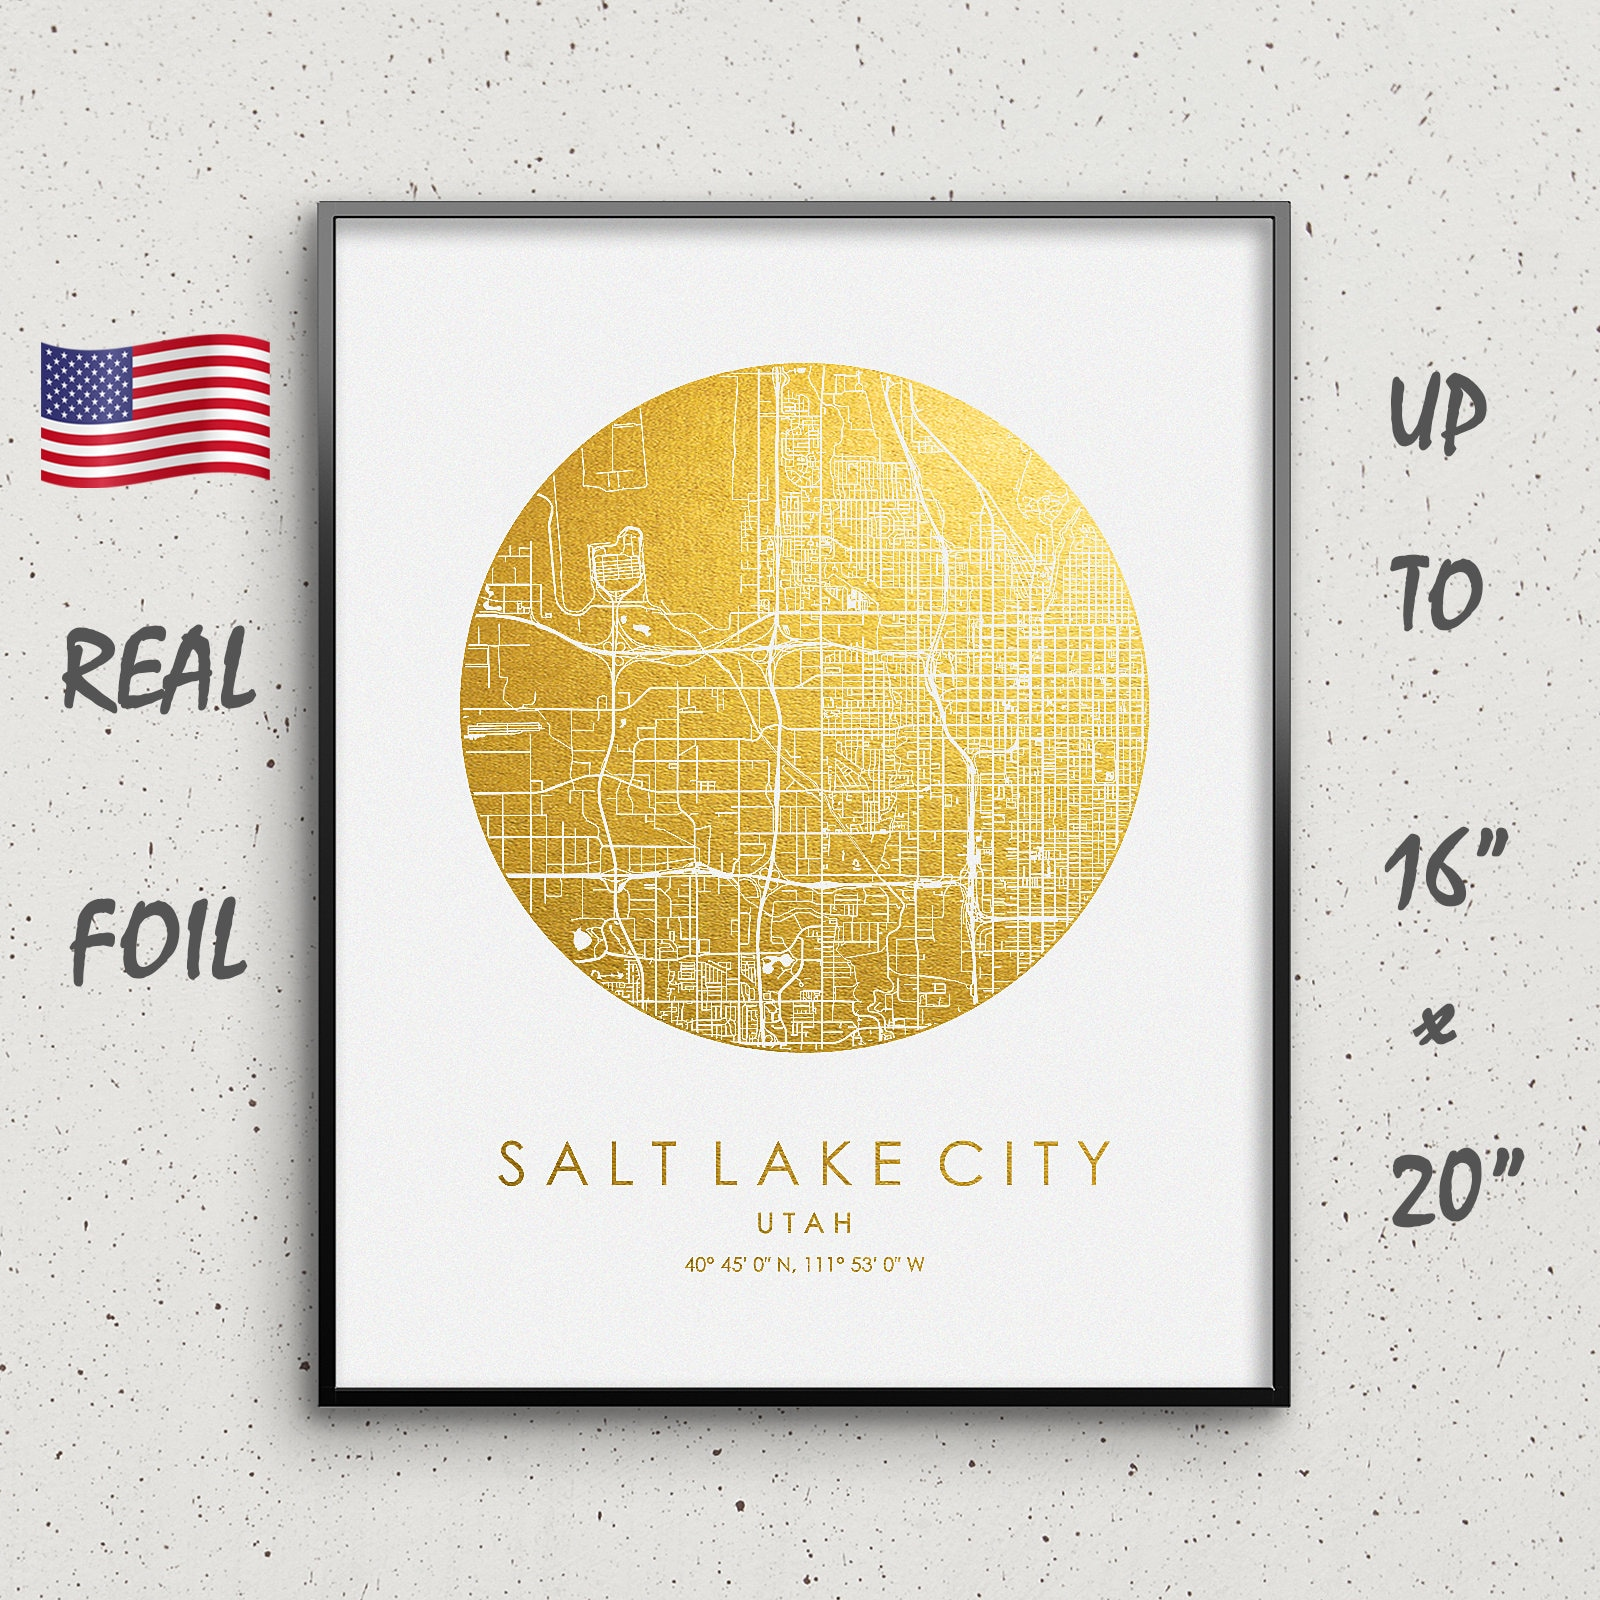 Salt Lake City Map Print, Gold & Silver Foil, Circle Map, Salt Lake City  Wall Art, Salt Lake City city Poster up to 16x20